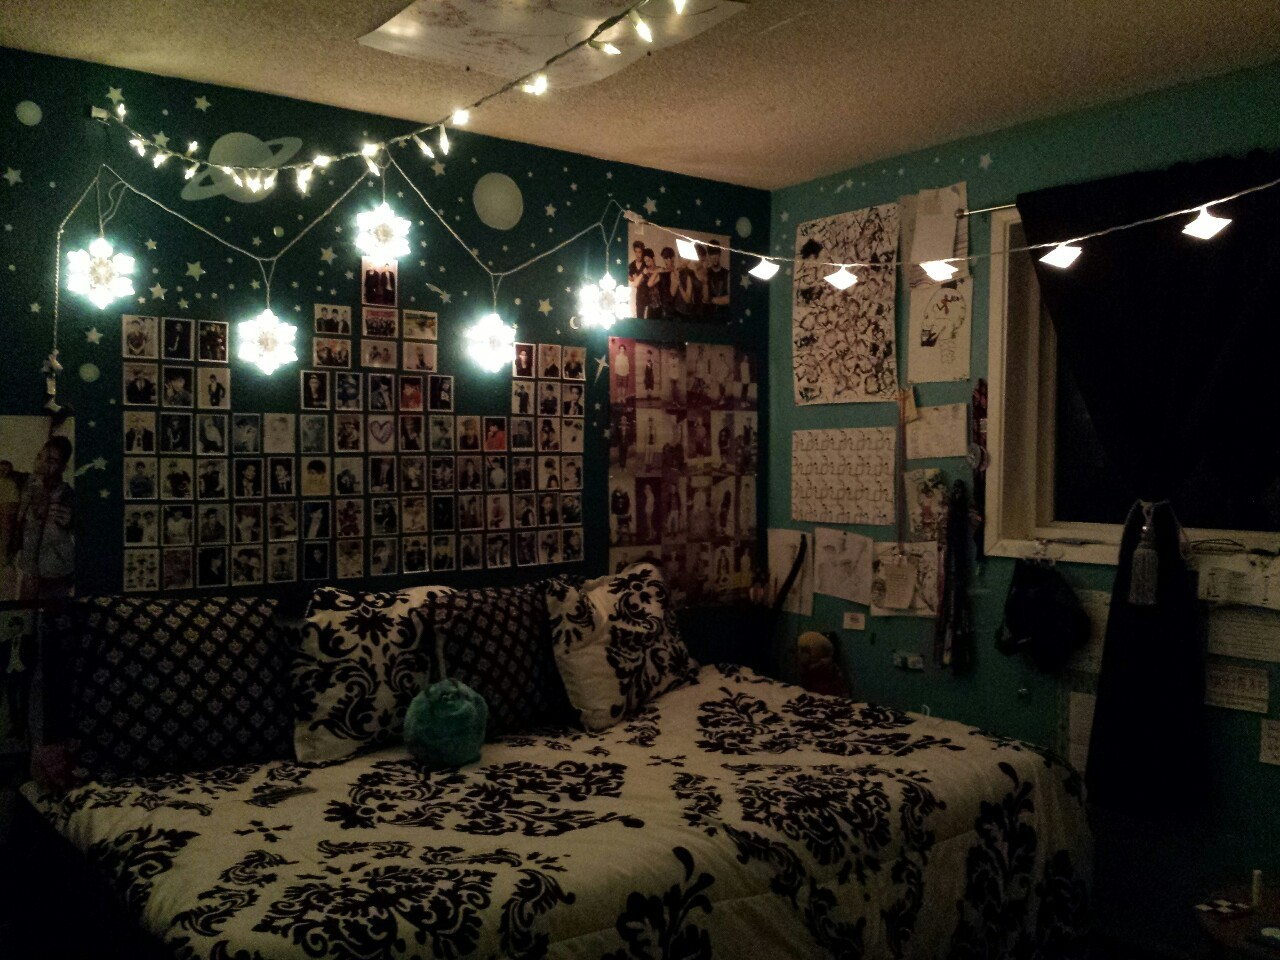 Kpop Bedroom Ideas If You Have Little Spaces String Lights Lighting Aesthetic Tumblr Wall Decorating Design Pokemon Room Crazy Bts Logo Apppie Org